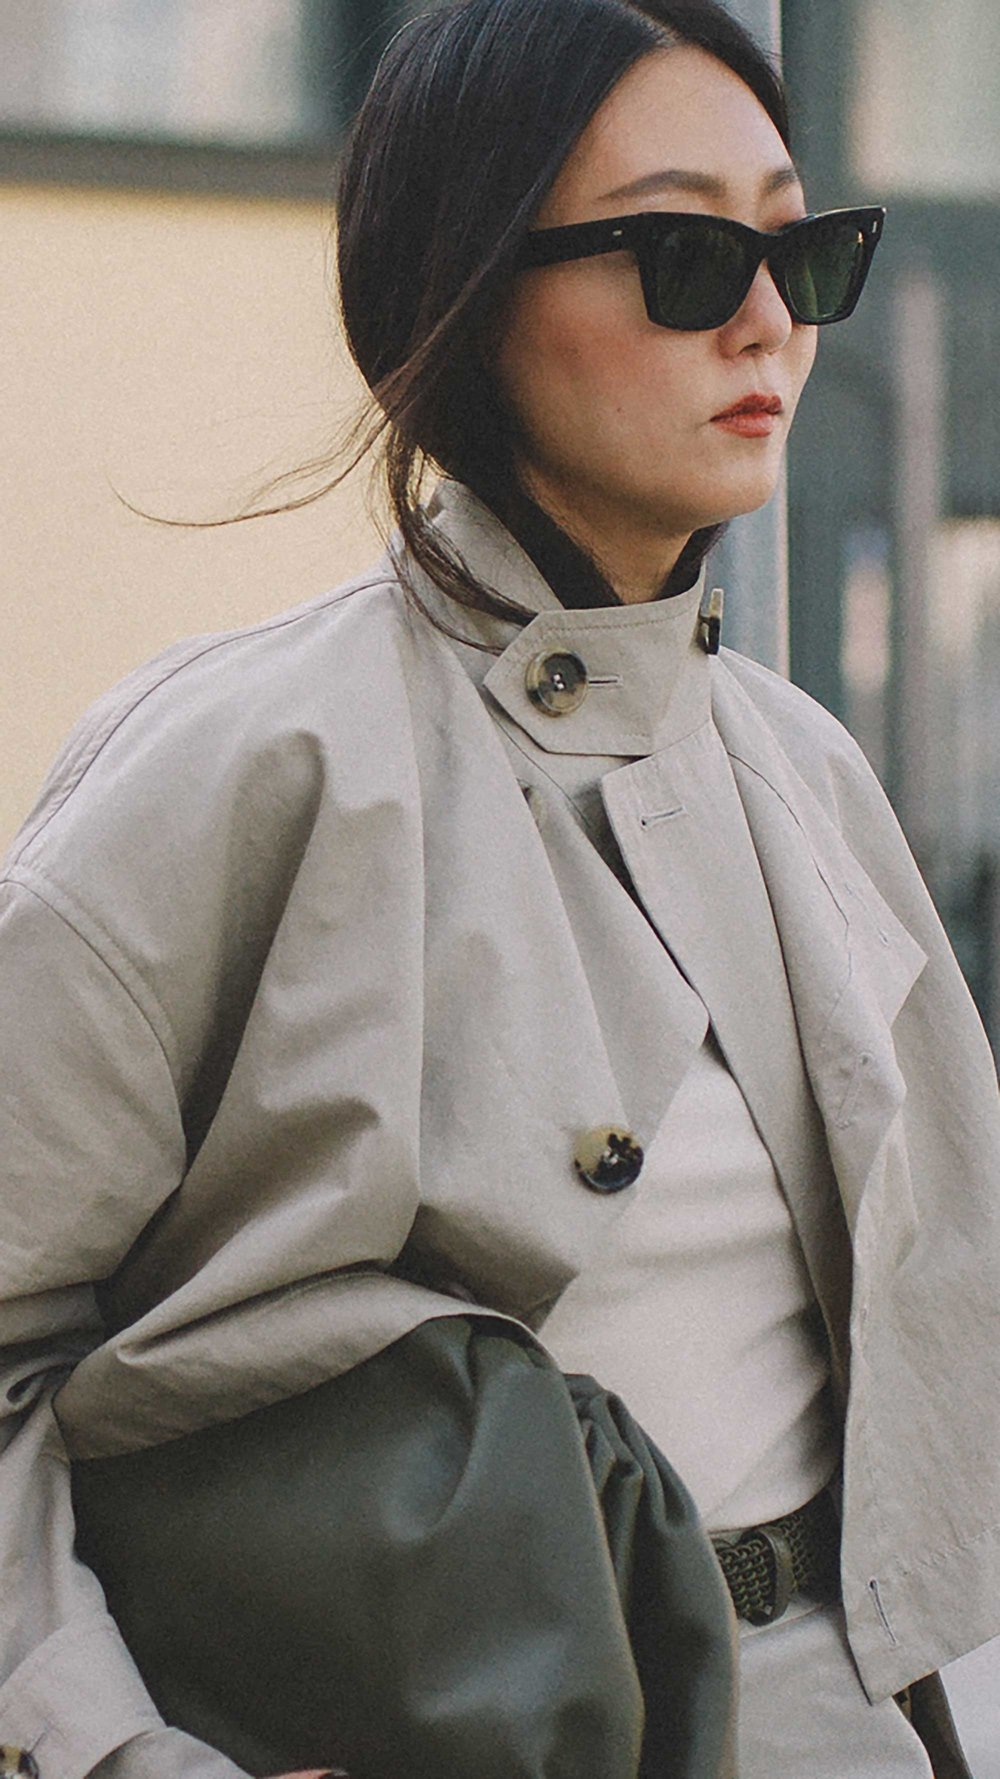 est outfits of Milan Fashion Week street style day two MFW FW19 58.jpg